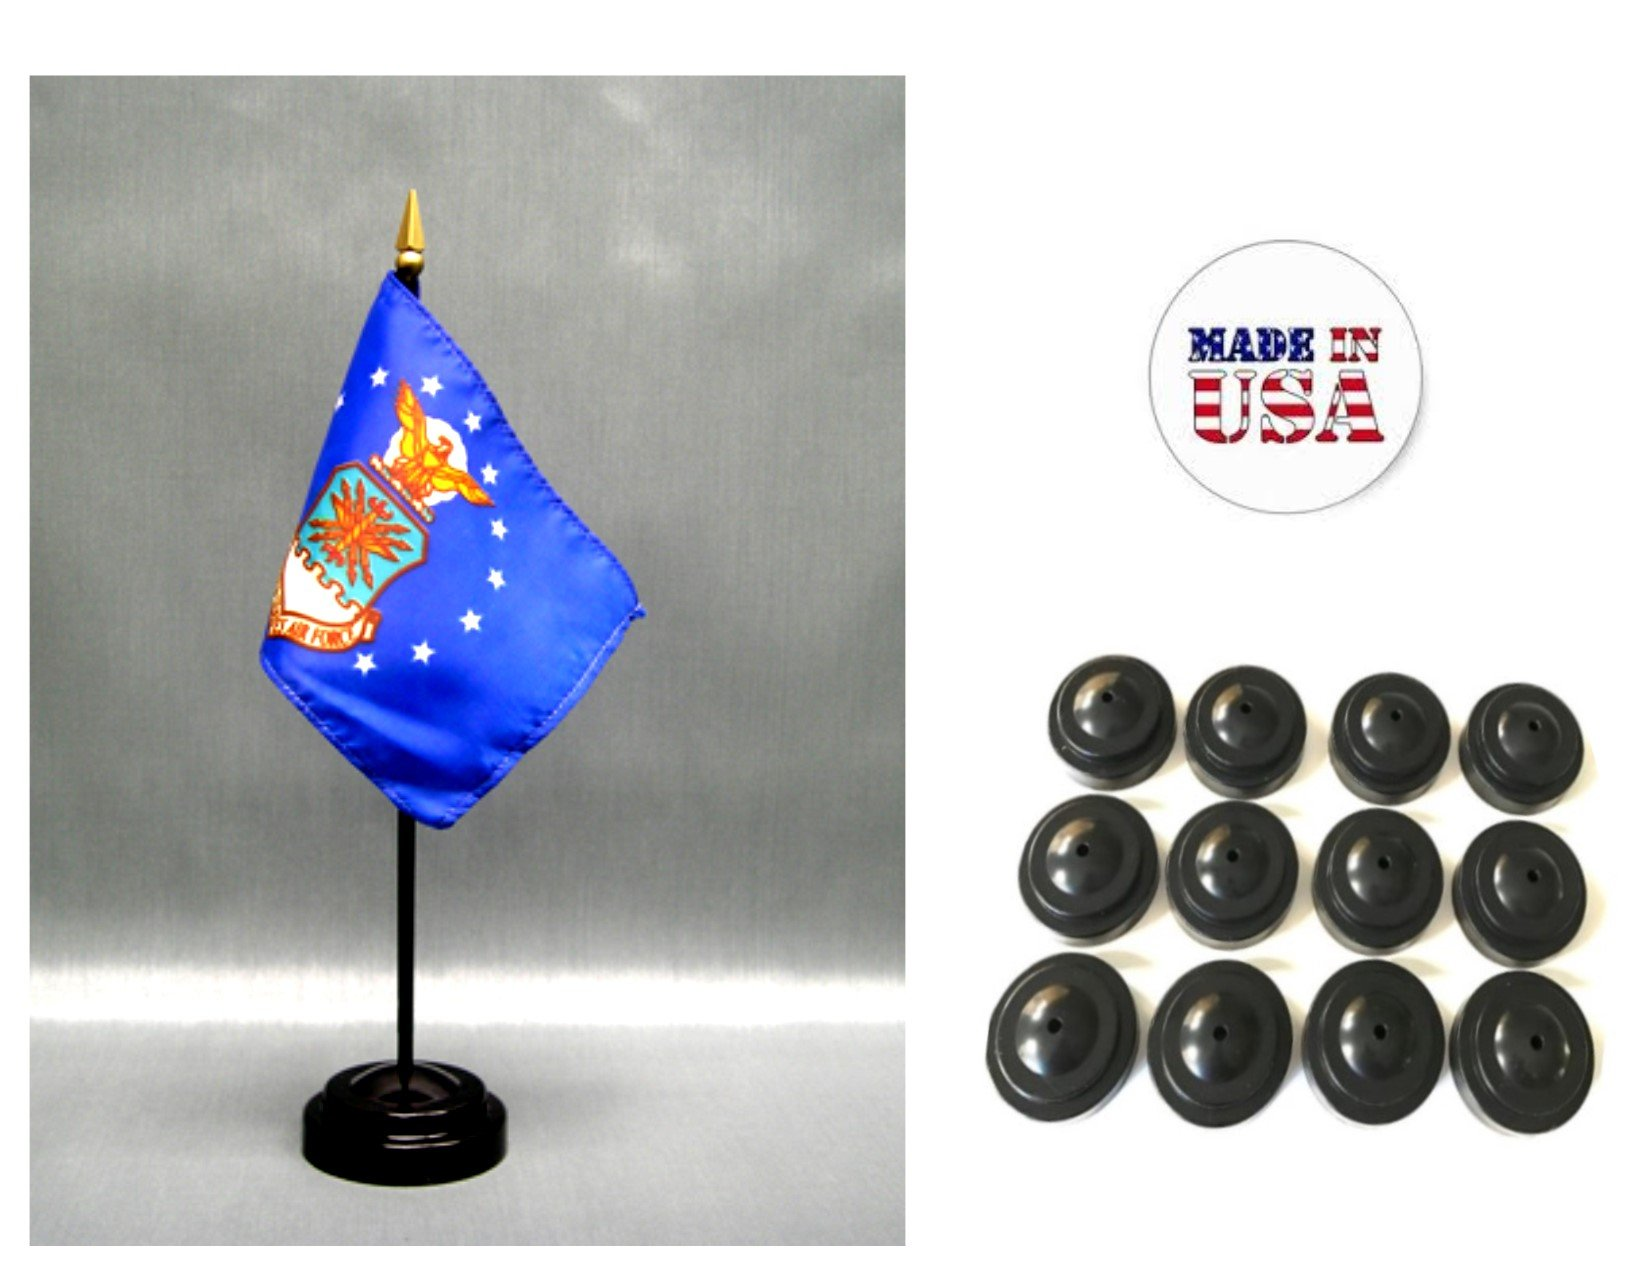 MADE IN USA!! Box of 12 United States Air Force 4''x6'' Miniature Desk & Table Flags Includes 12 Flag Stands & 12 American Made Small Mini USAF Stick Flags